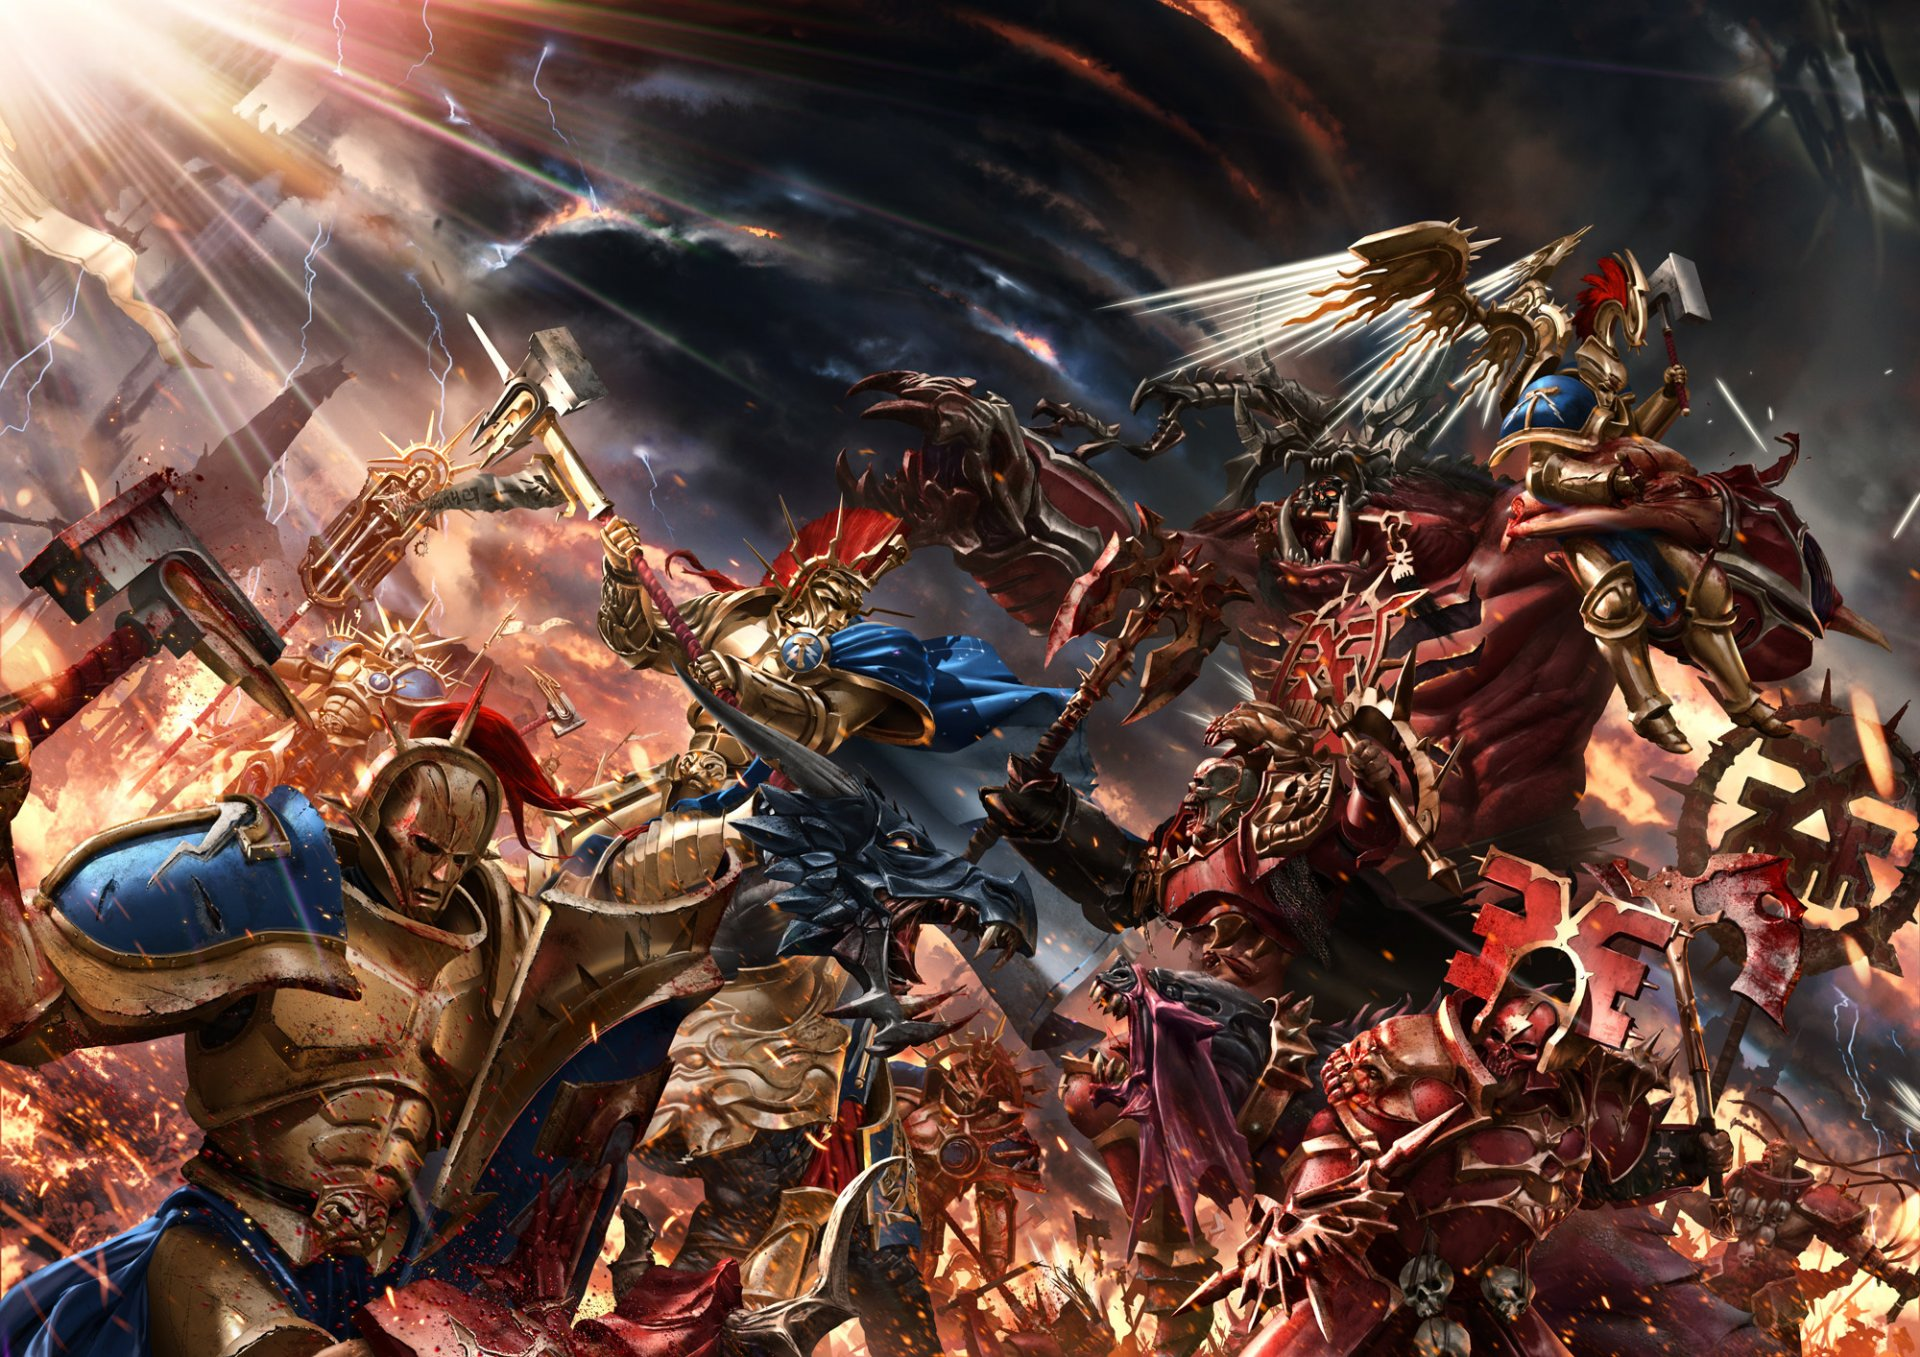 Age of Sigmar, the game of High Fantasy Battles